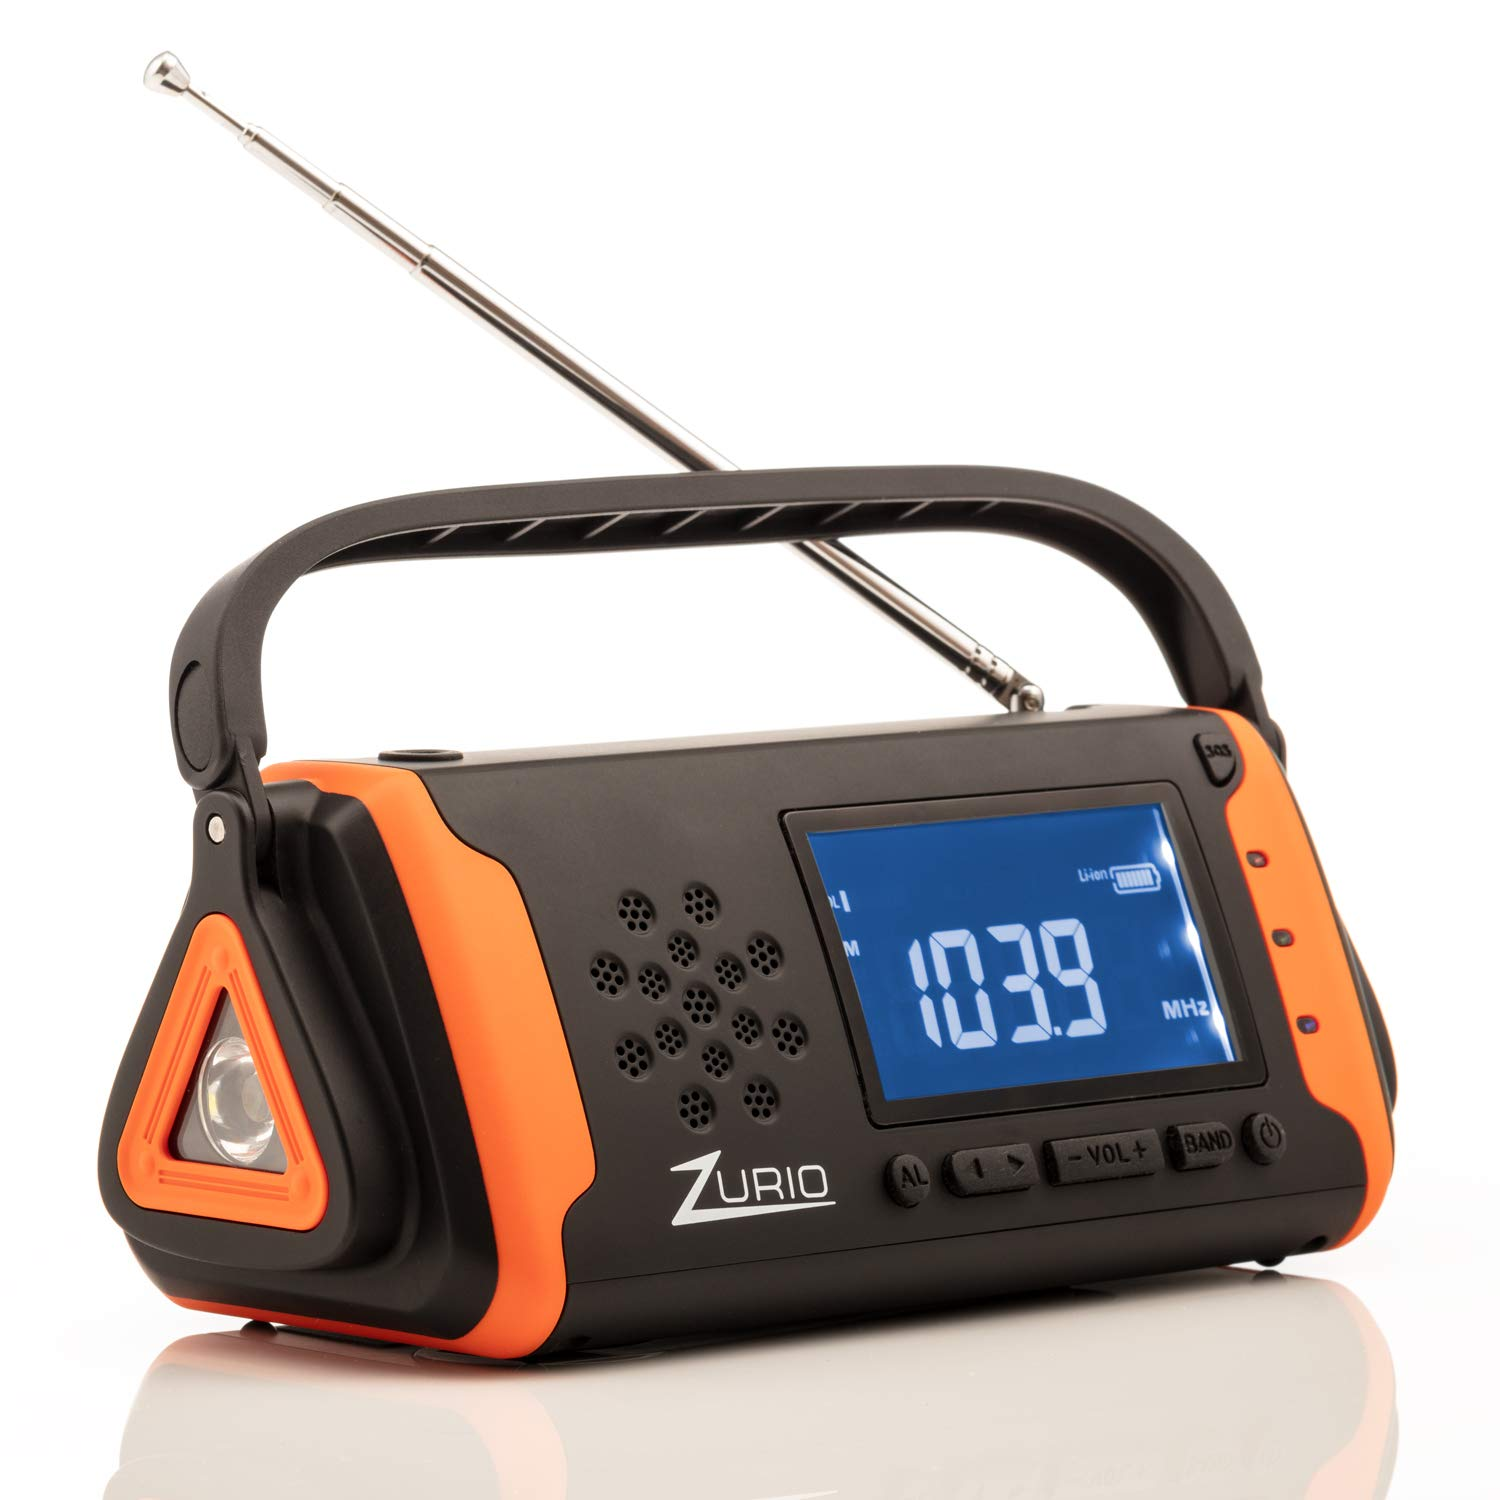 Emergency Radio with NOAA Weather Alert - Hand Crank and Solar Power - AM FM Survival Radio with Flashlight, Cell Phone Charger, and SOS Alarm with Battery Backup by Zurio